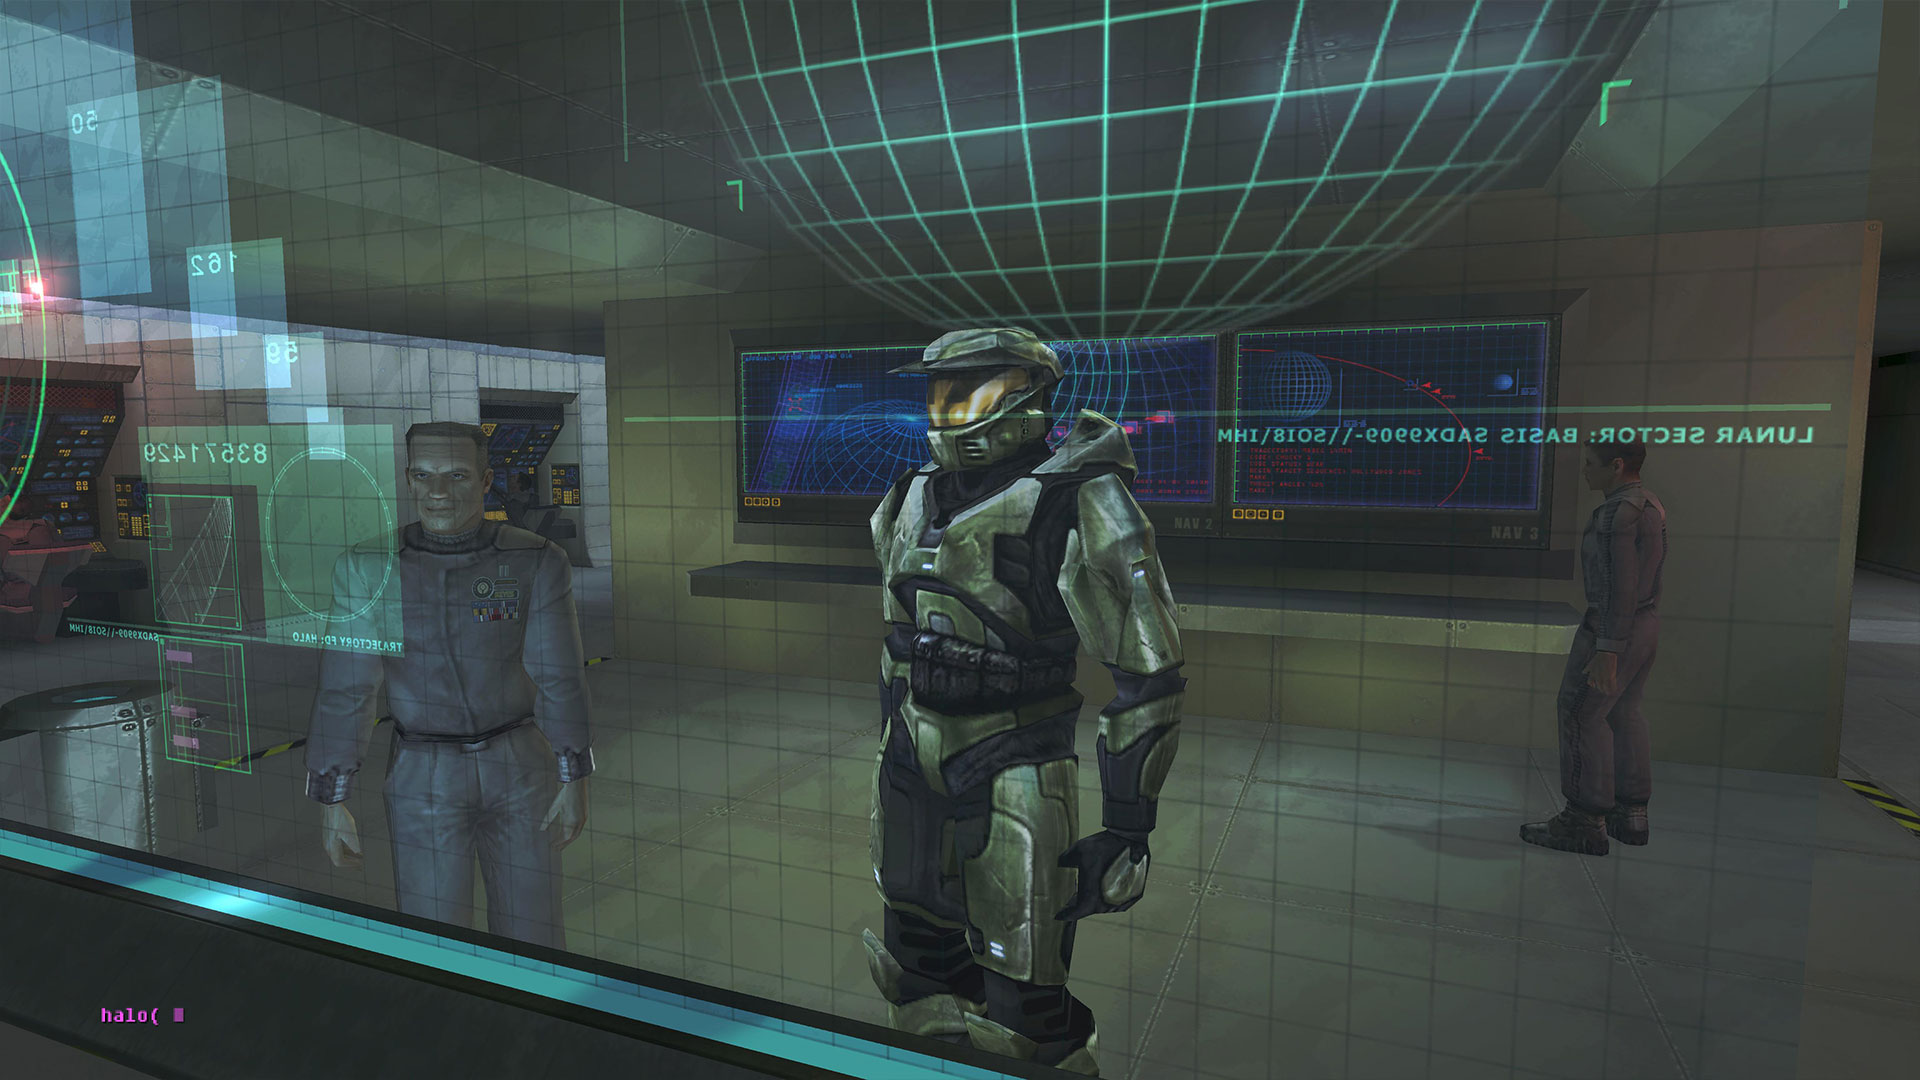 Rozsáhlá galerie Halo: The Master Chief Collection 101390